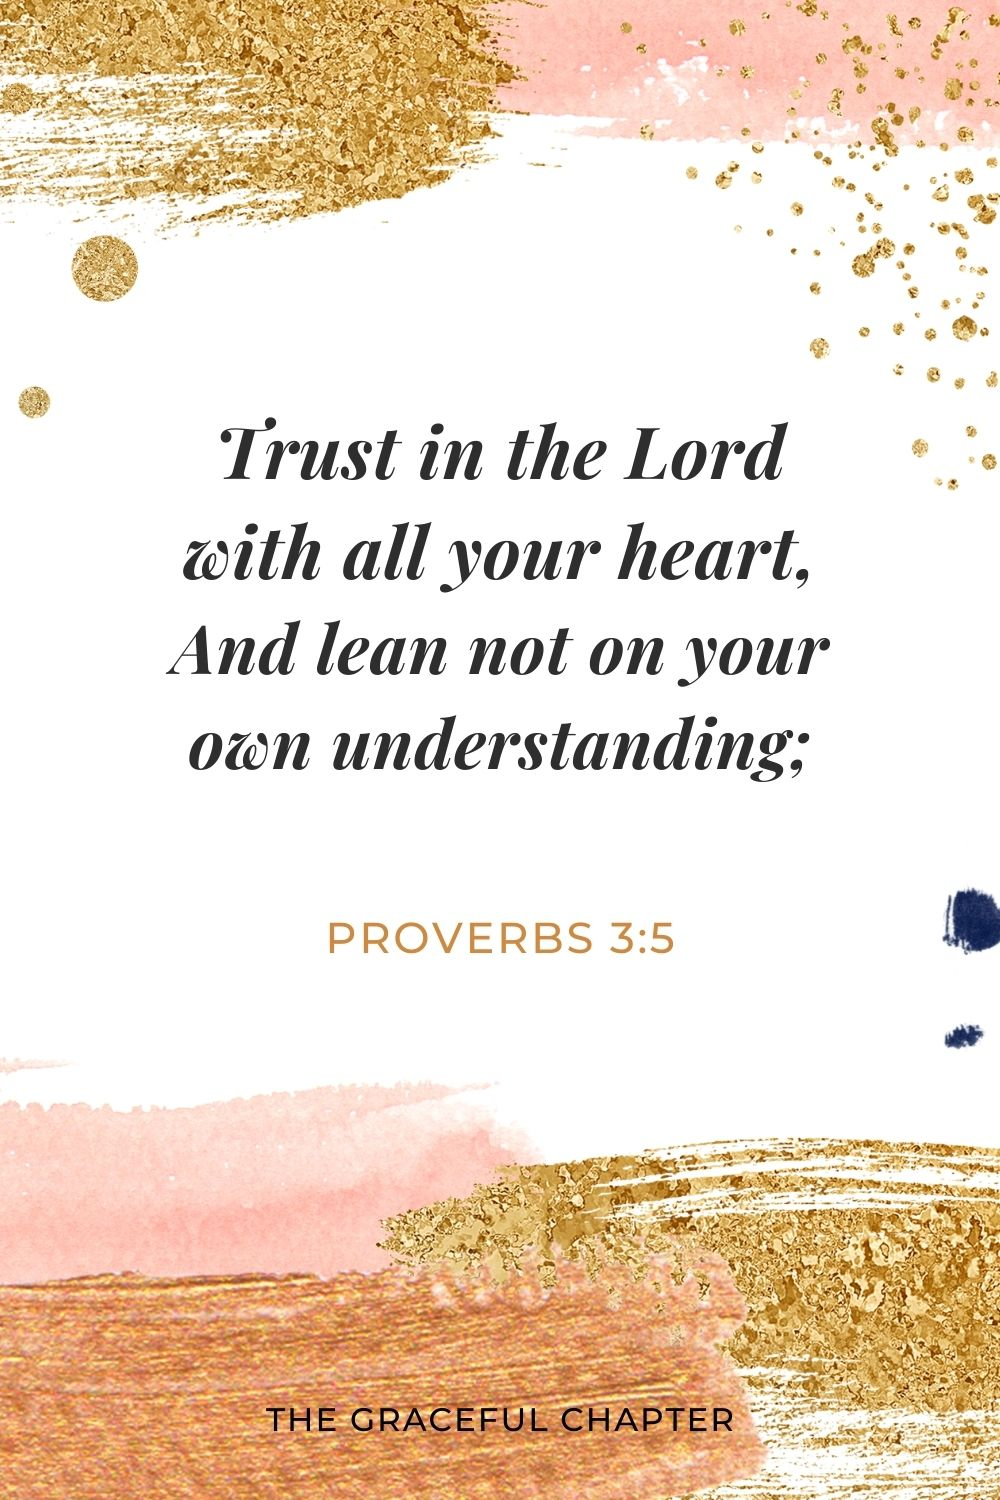 Trust in the Lord with all your heart, And lean not on your own understanding; Proverbs 3:5